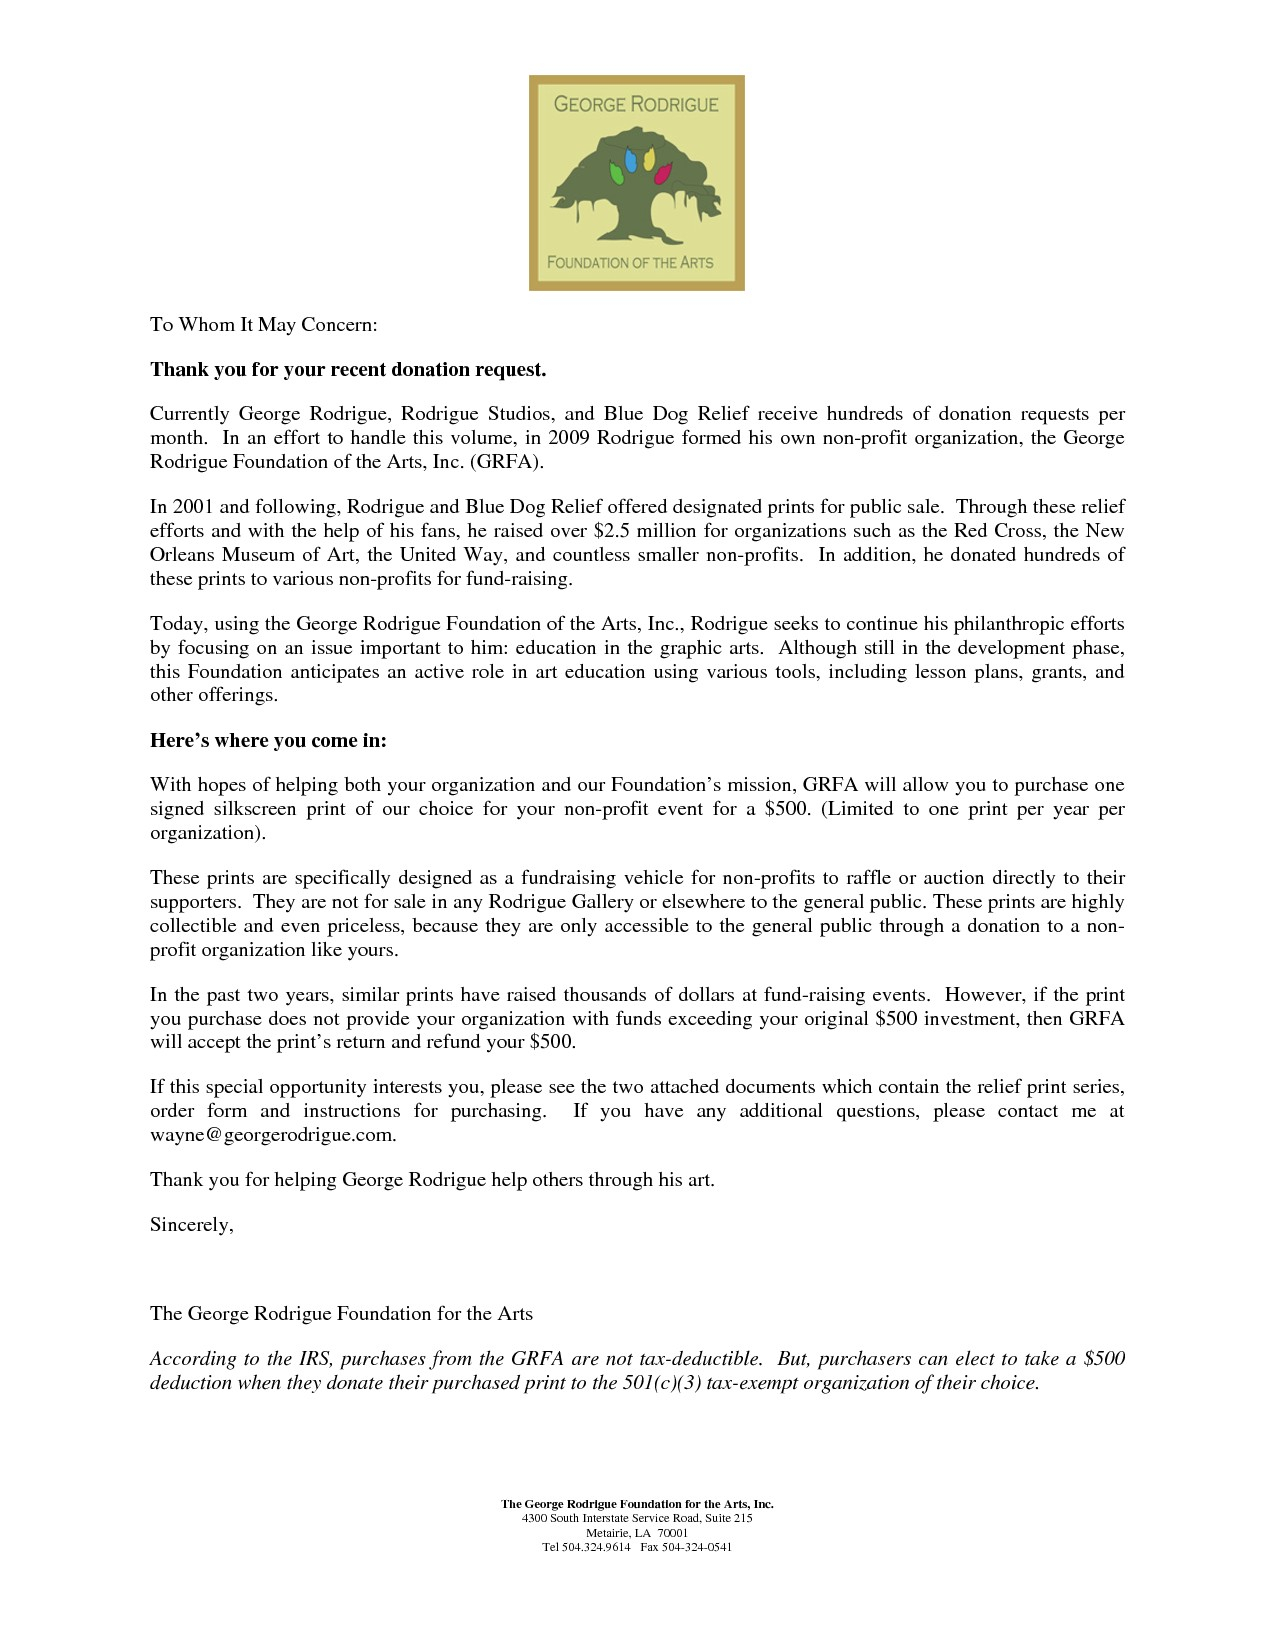 fundraising letter template non profit organizations collection